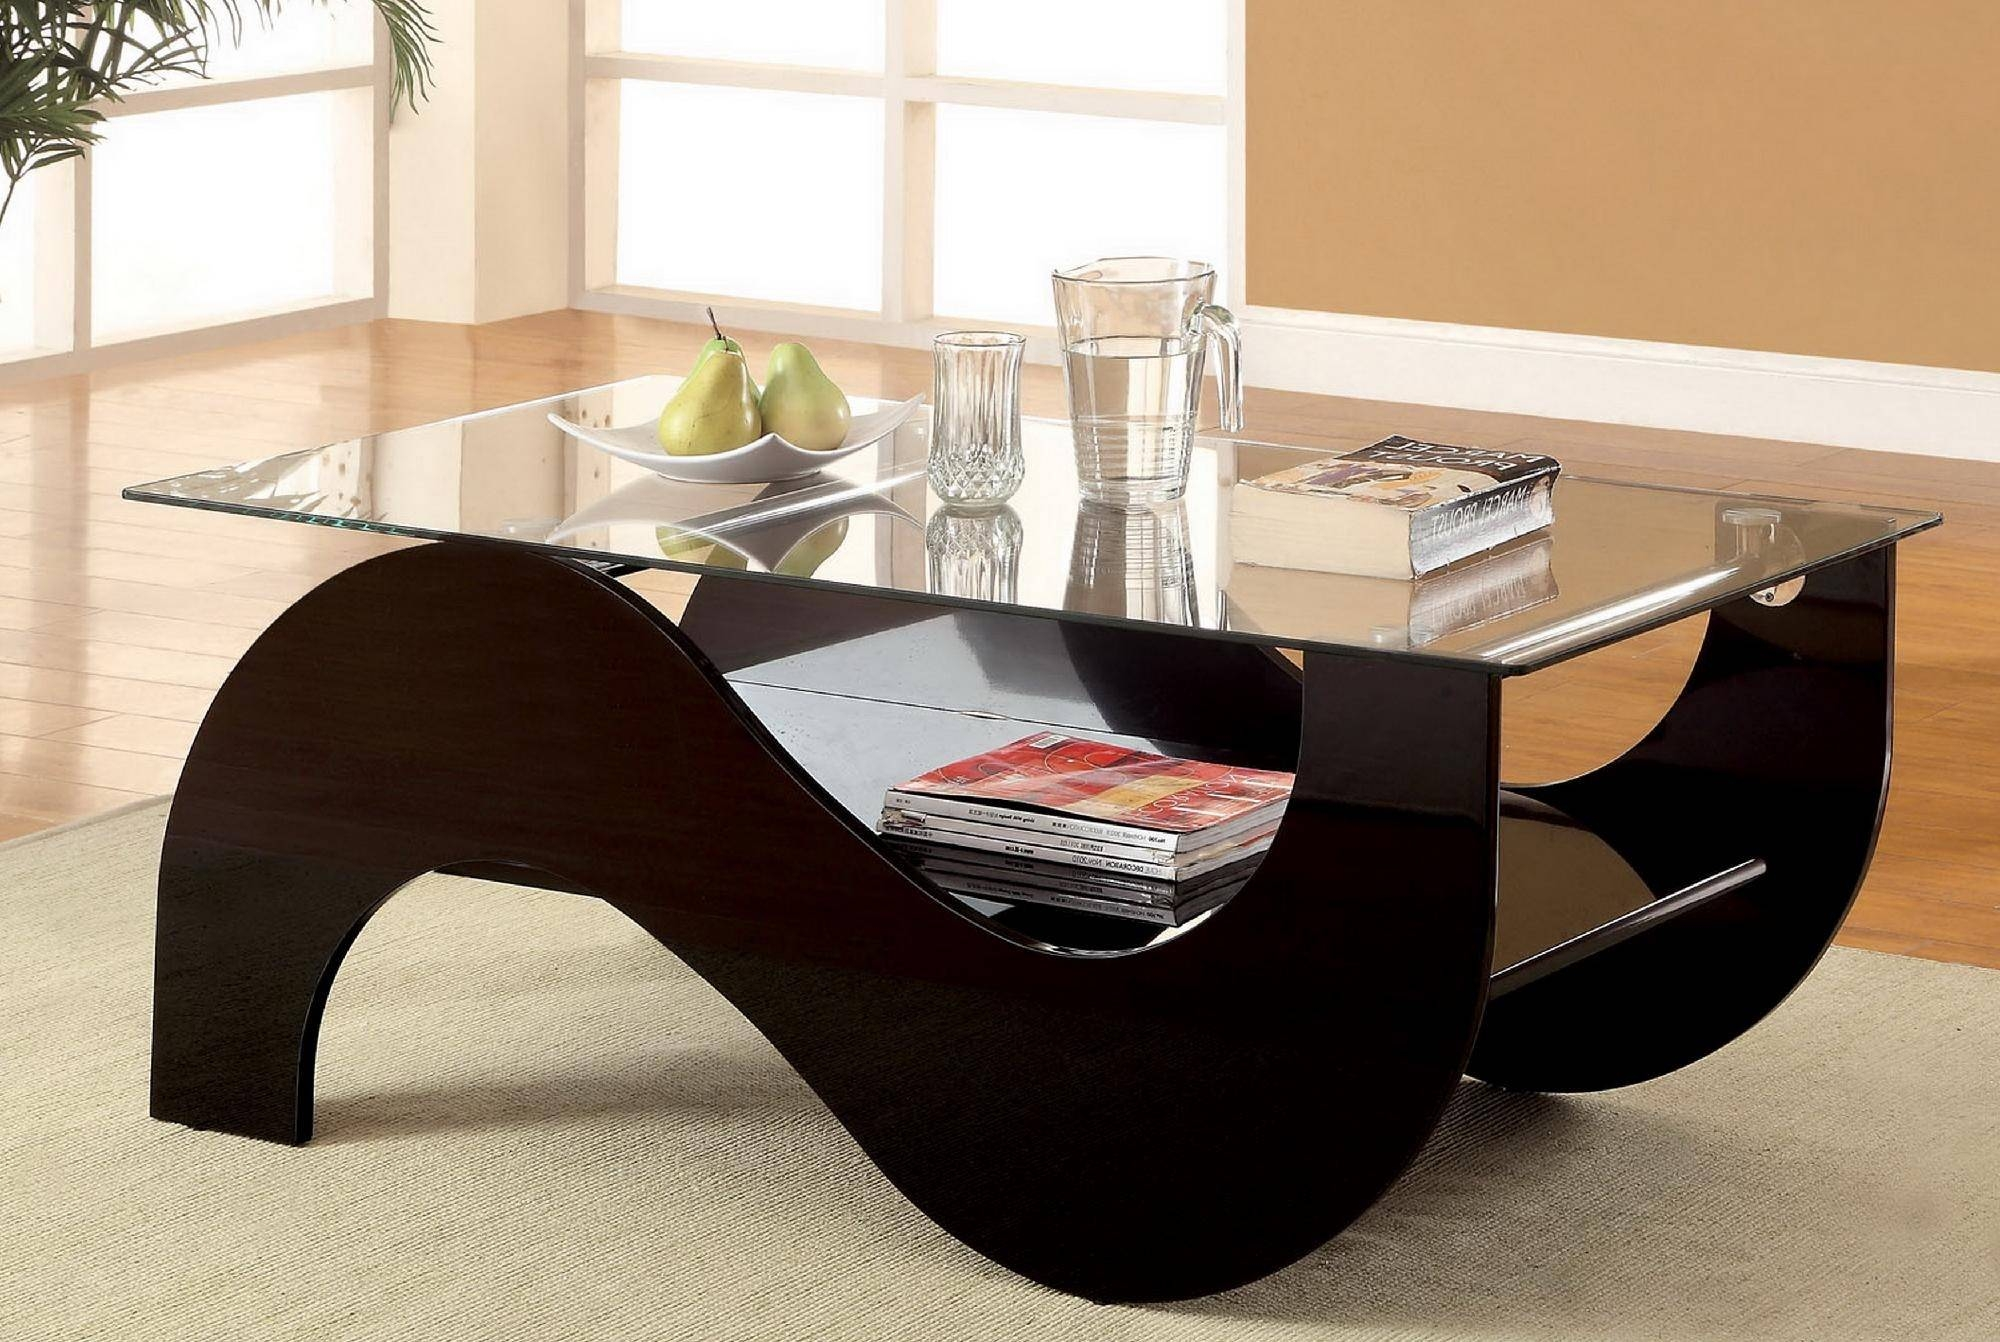 1000 Images About Glass Coffee Tables On Pinterest Bespoke Swirl regarding Swirl Glass Coffee Tables (Image 1 of 30)